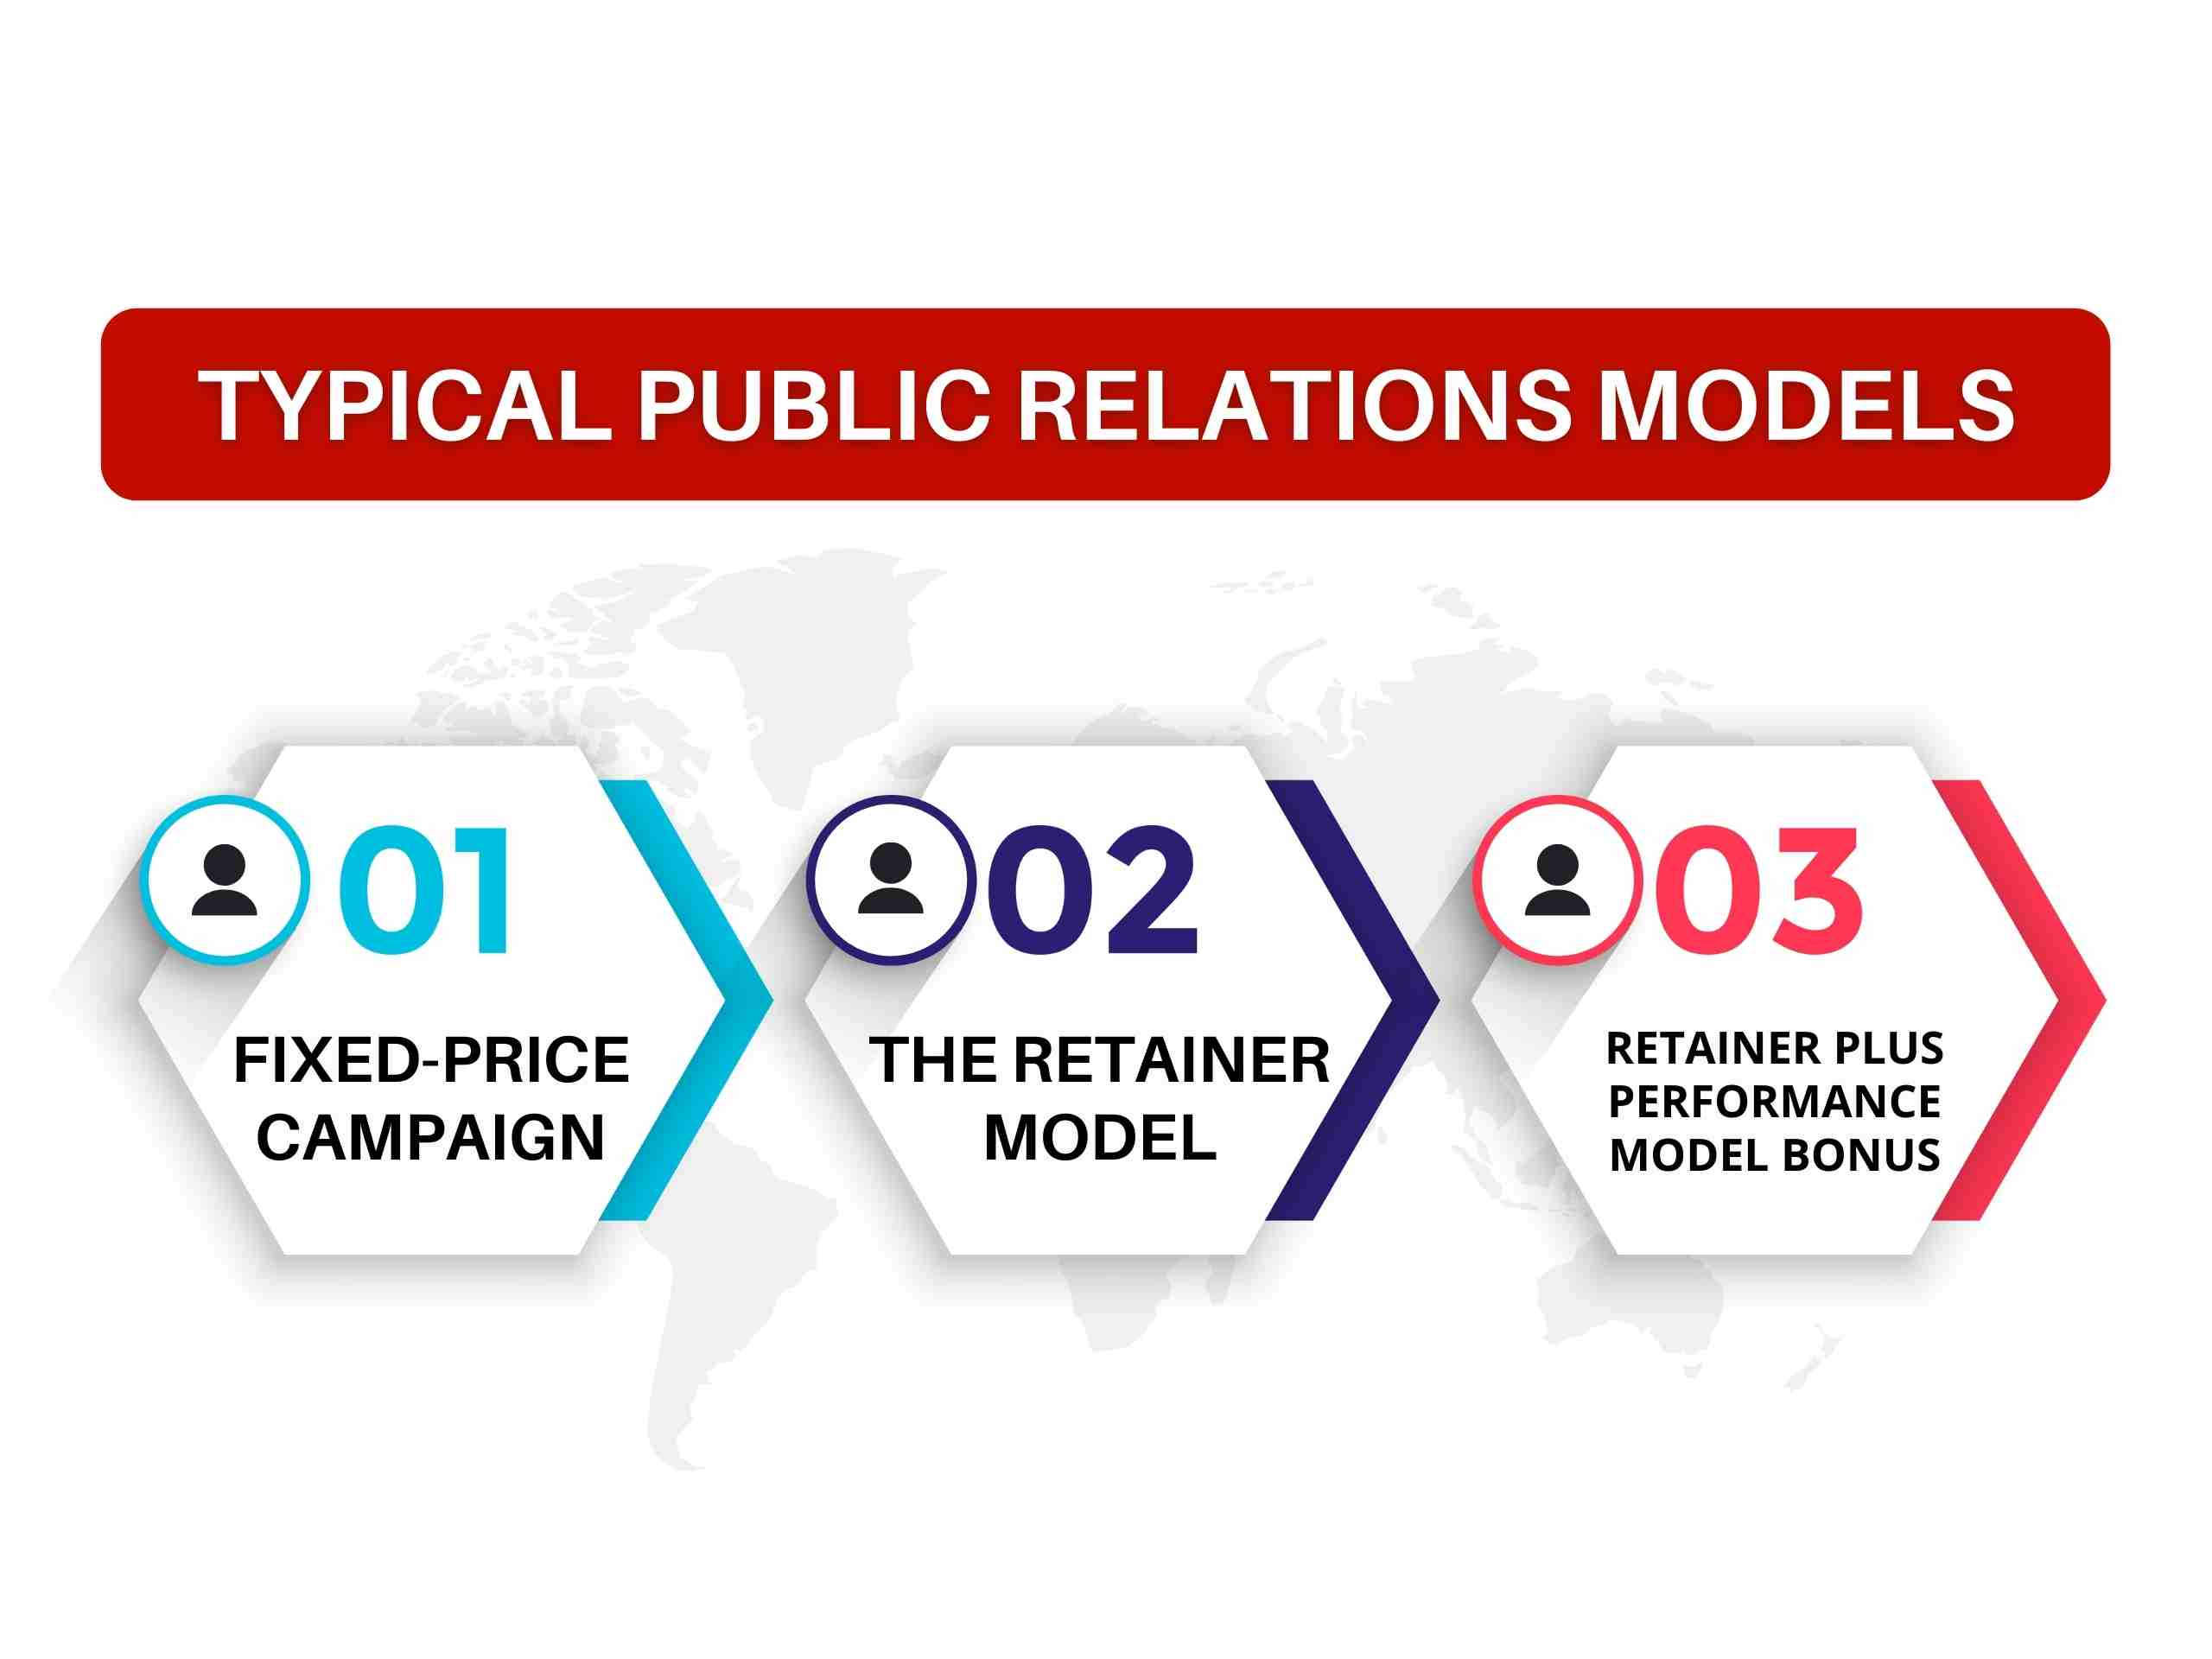 Types of Public Relations Commercial Models